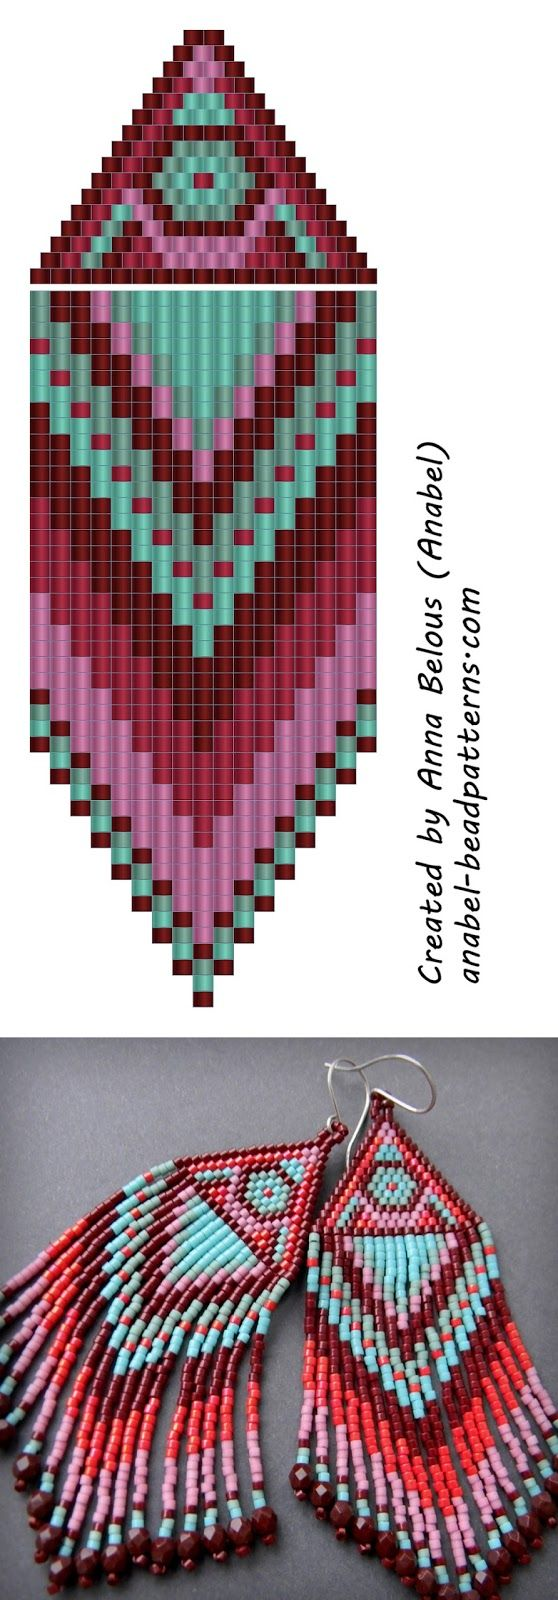 Схема ярких серег - seed bead earrings pattern - peyote earrings with fringe